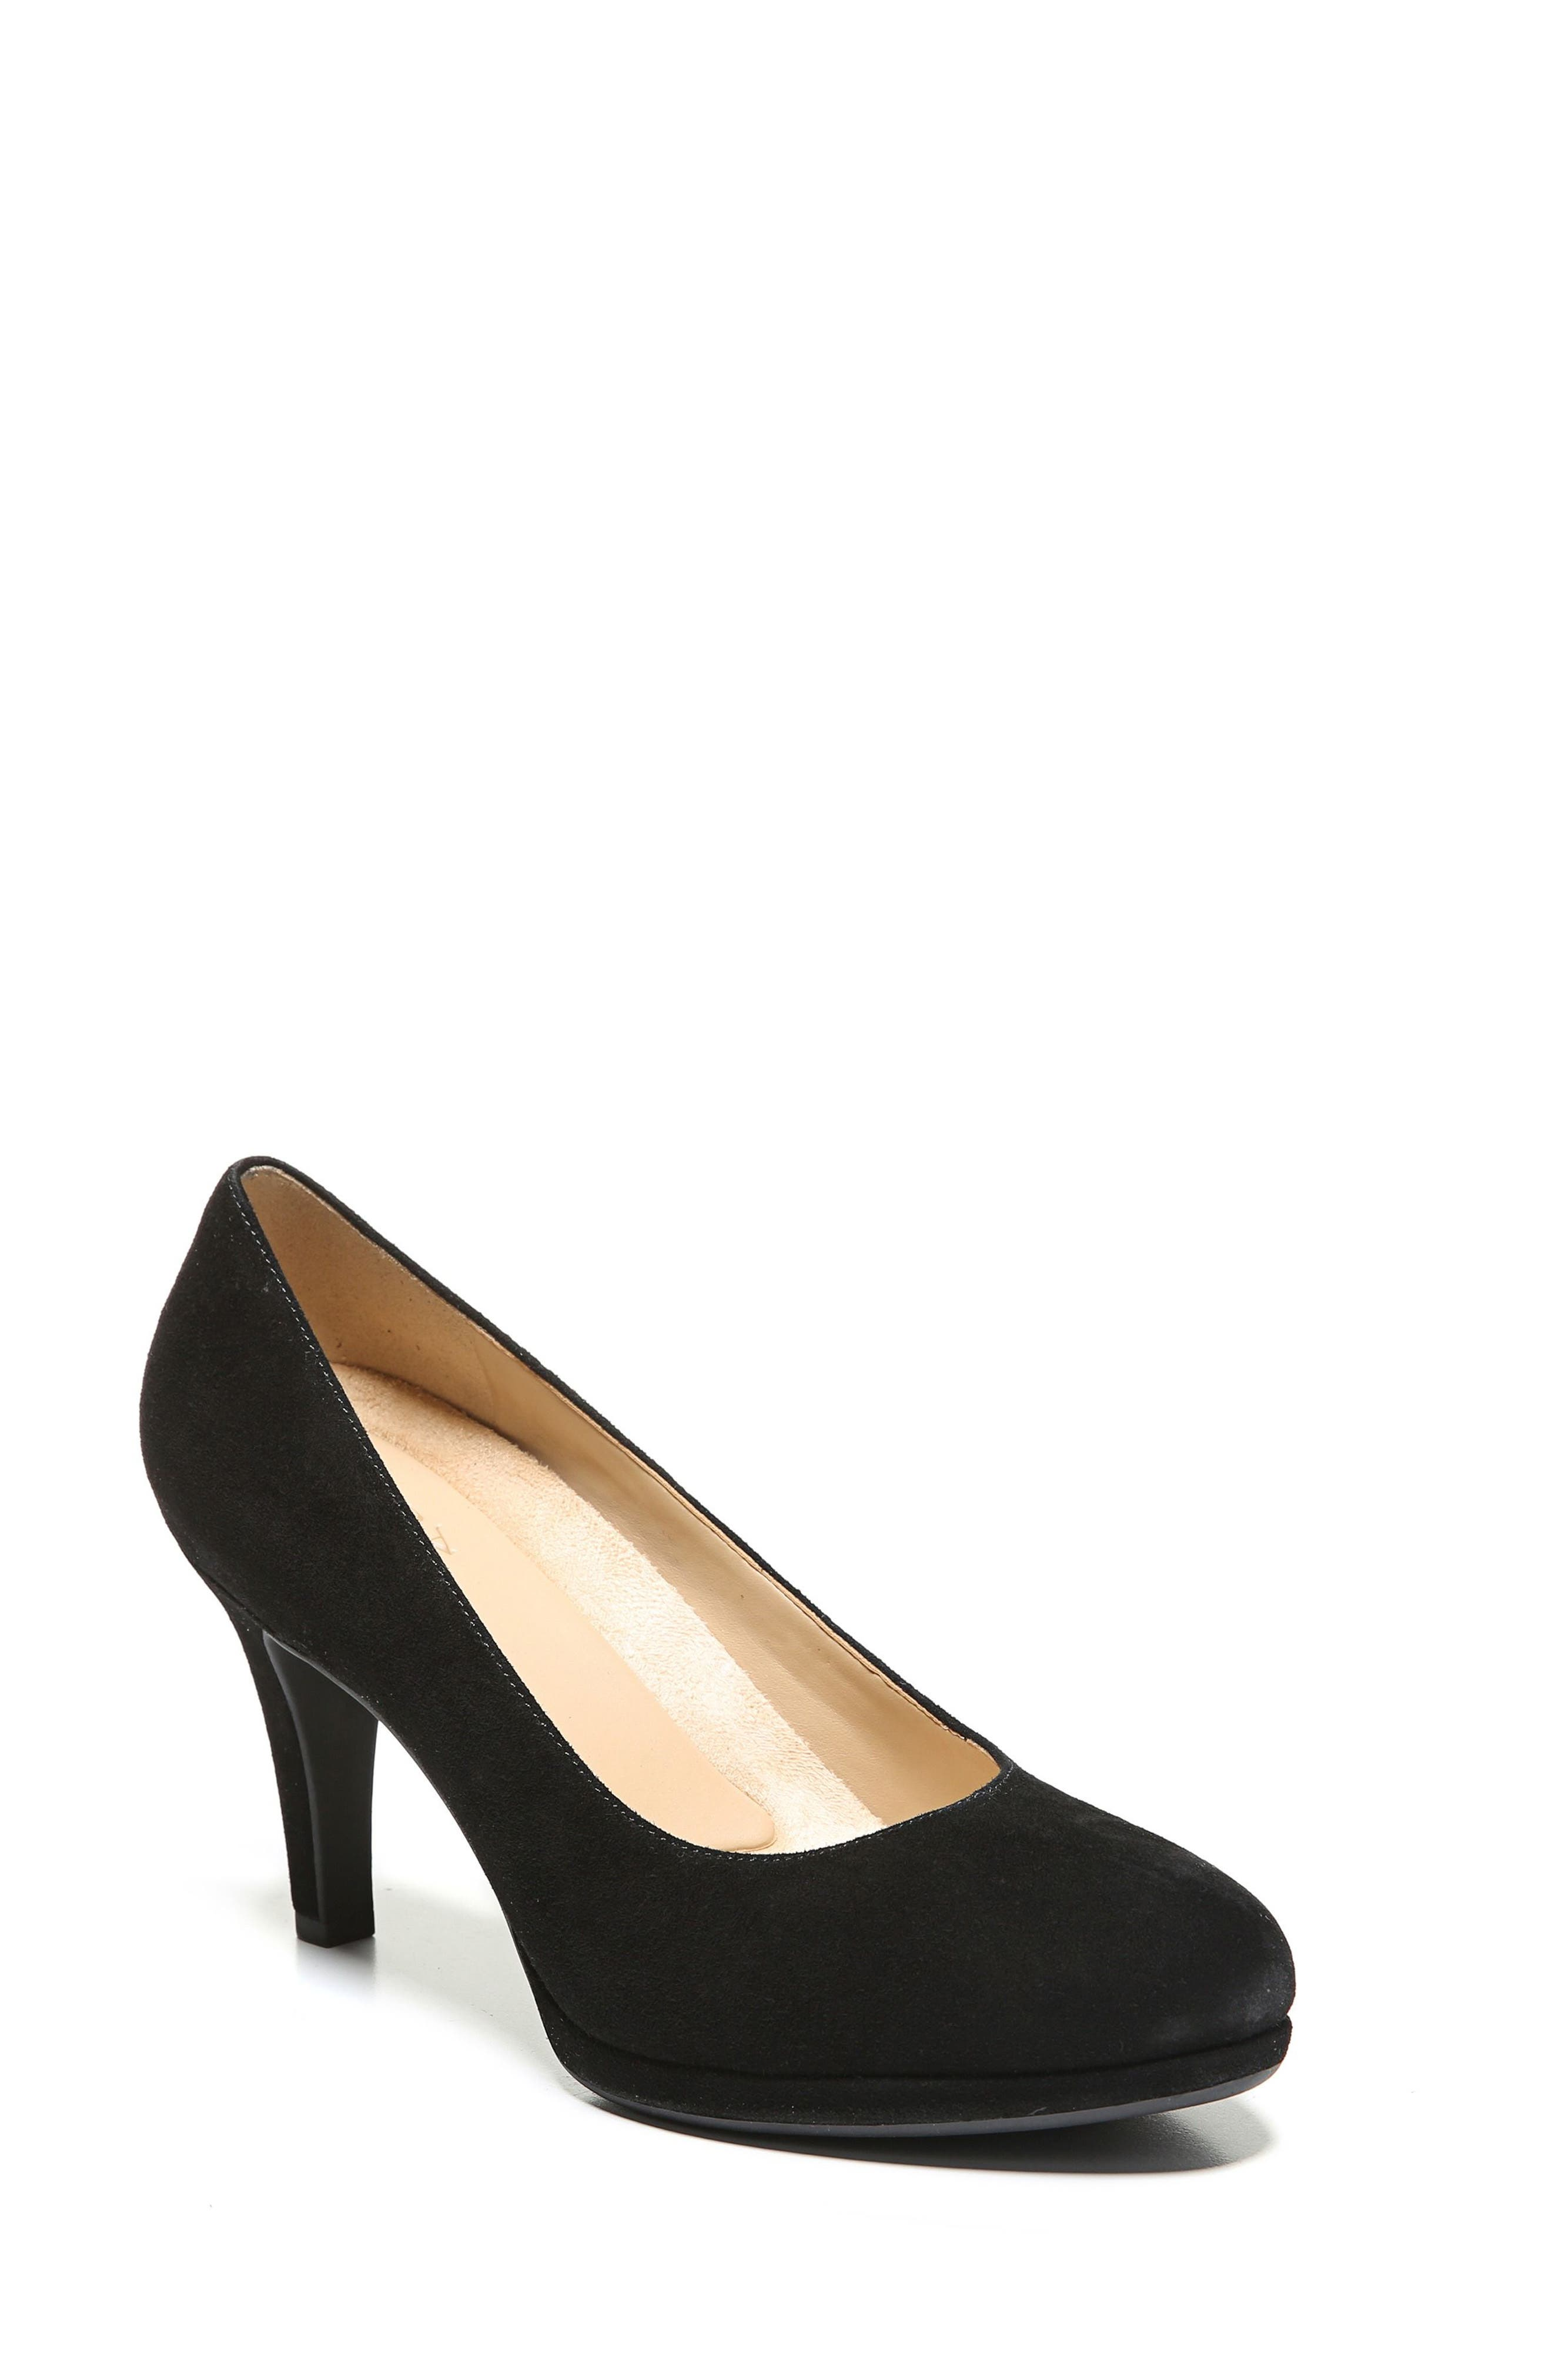 fcdab63796e Women s Naturalizer Comfortable Heels   Comfortable Pumps